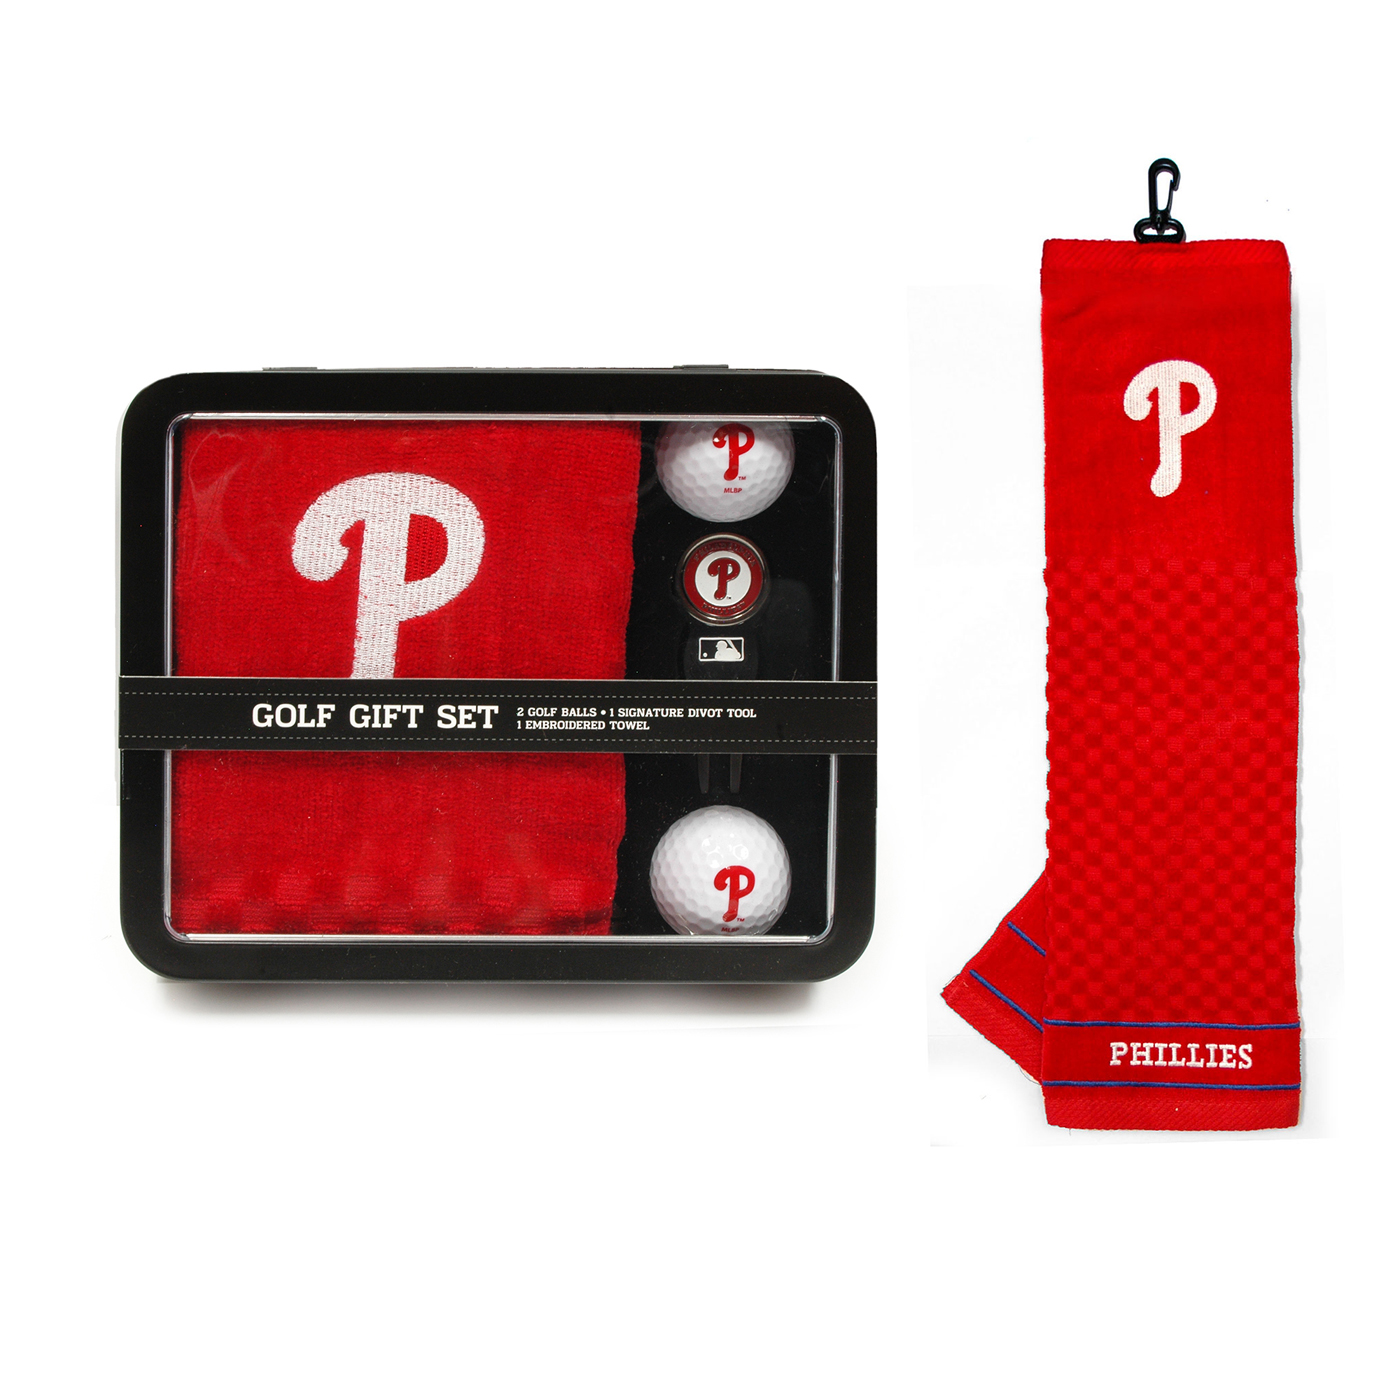 The golf warehouse coupon codes 2018